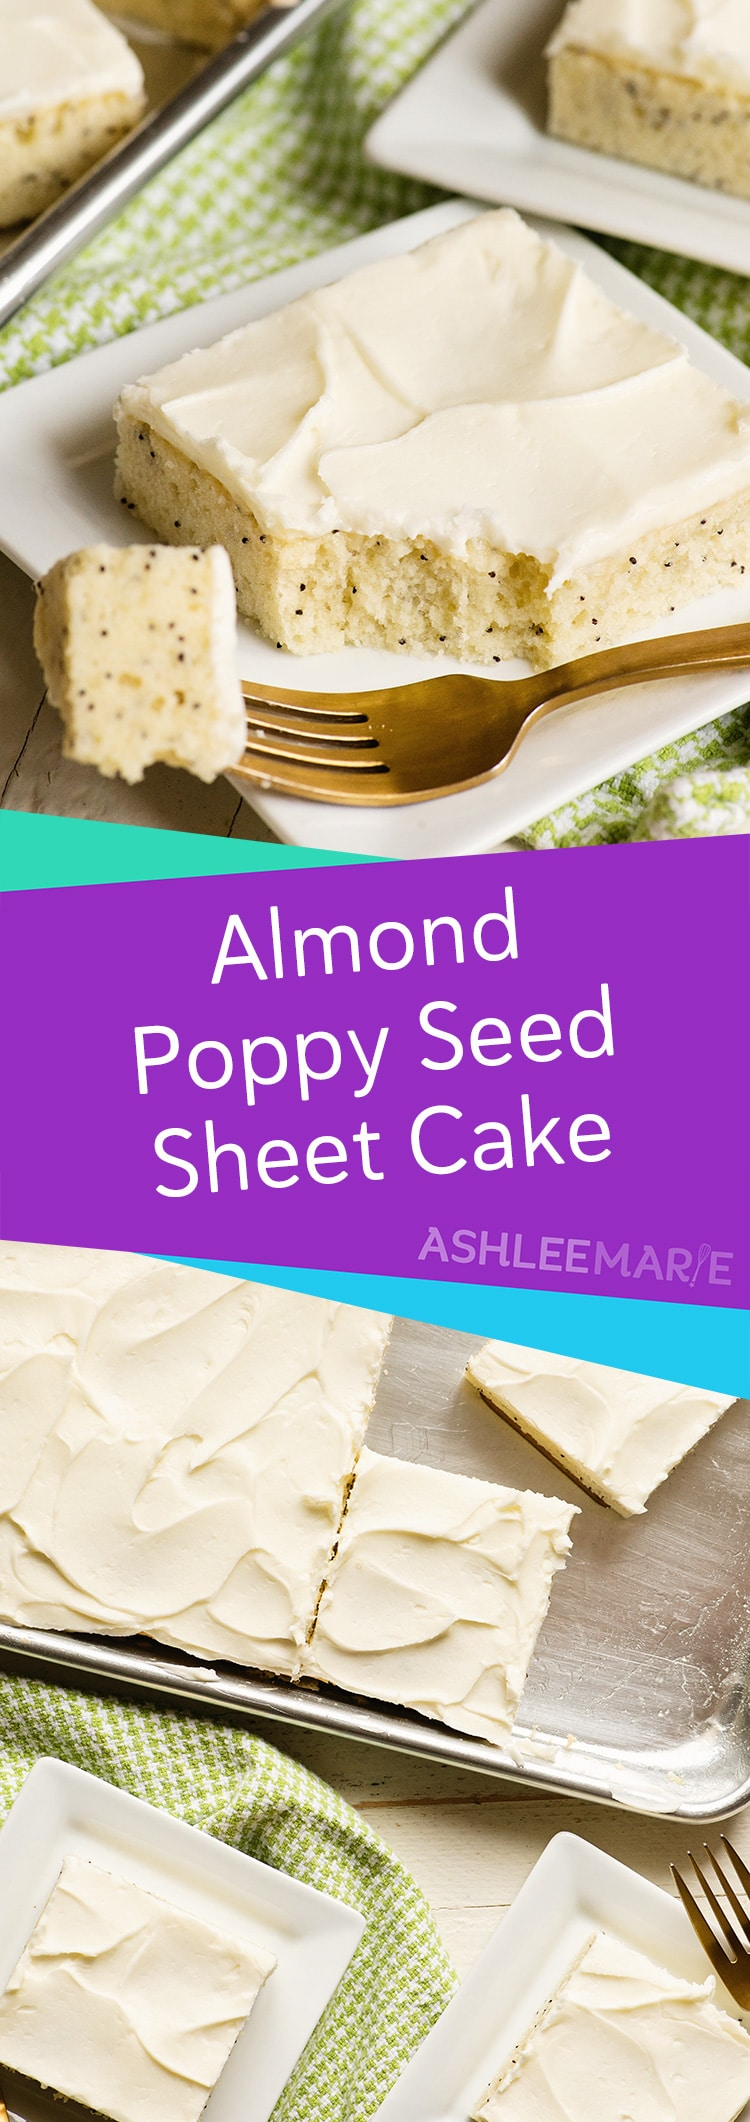 easy almond poppy seed sheet cake